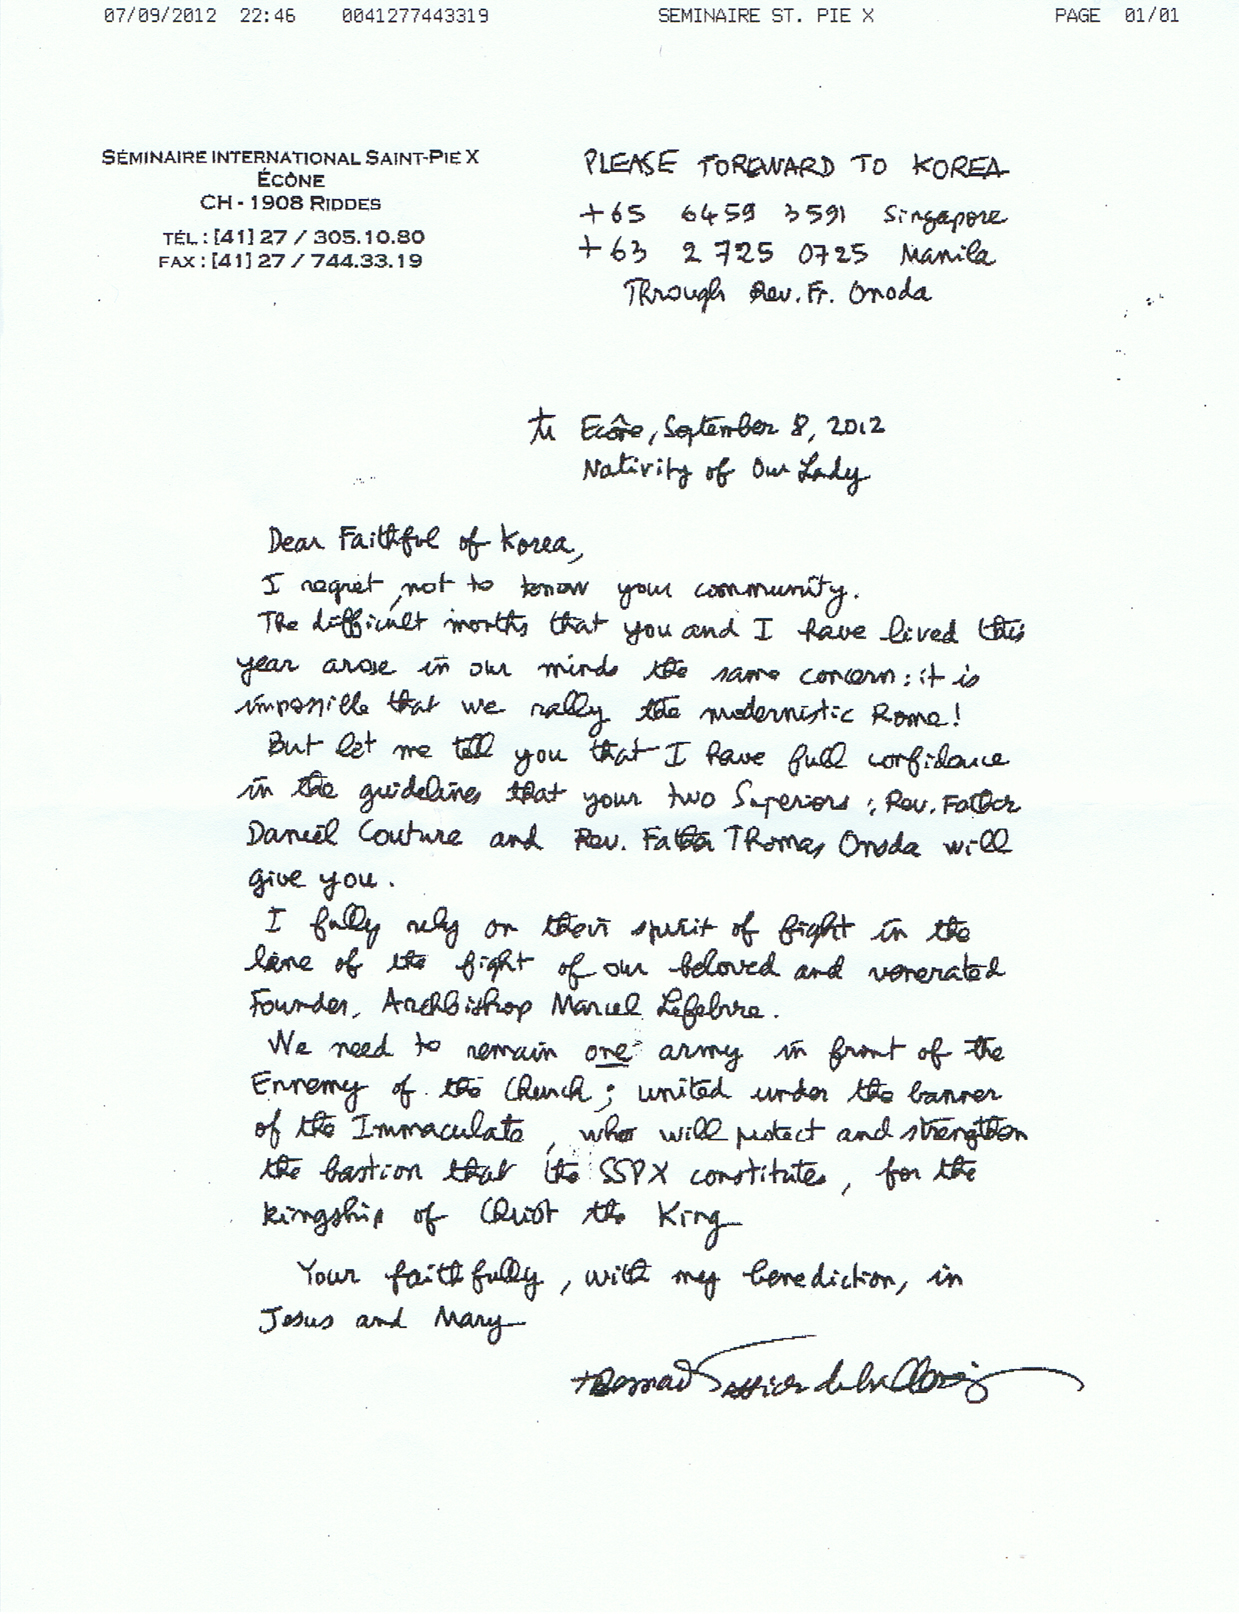 No rome sspx accord from cfn letter from fr couture asia district actual fax letter thecheapjerseys Gallery